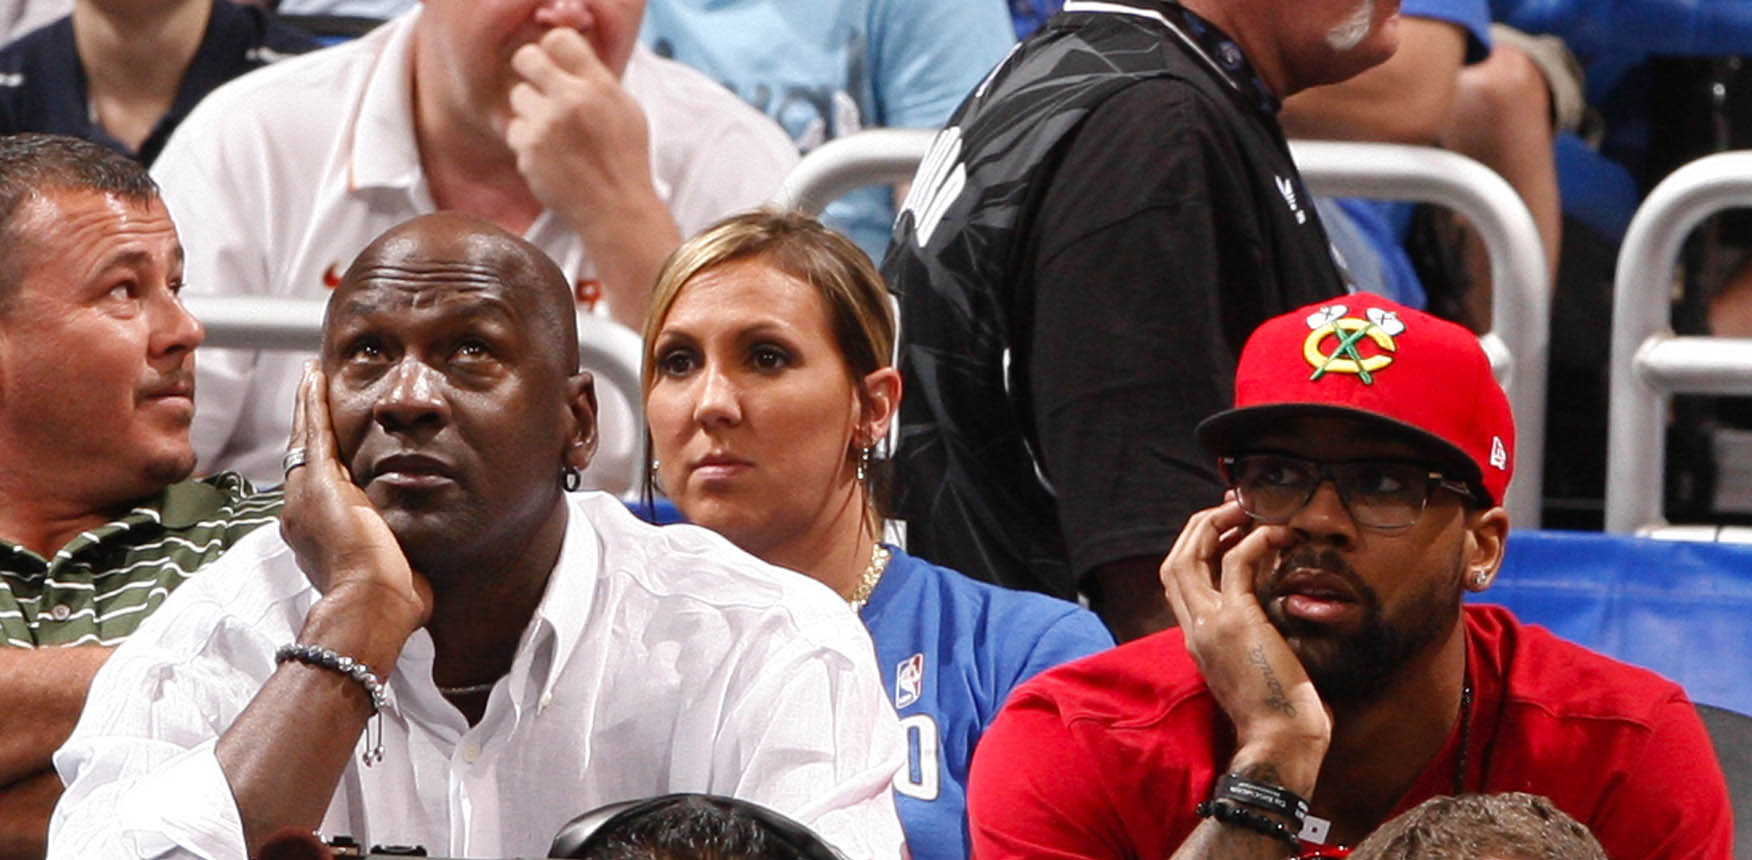 Michael Jordan watches the game against the Orlando Magic with his son Marcus in 2011. (Getty Images)